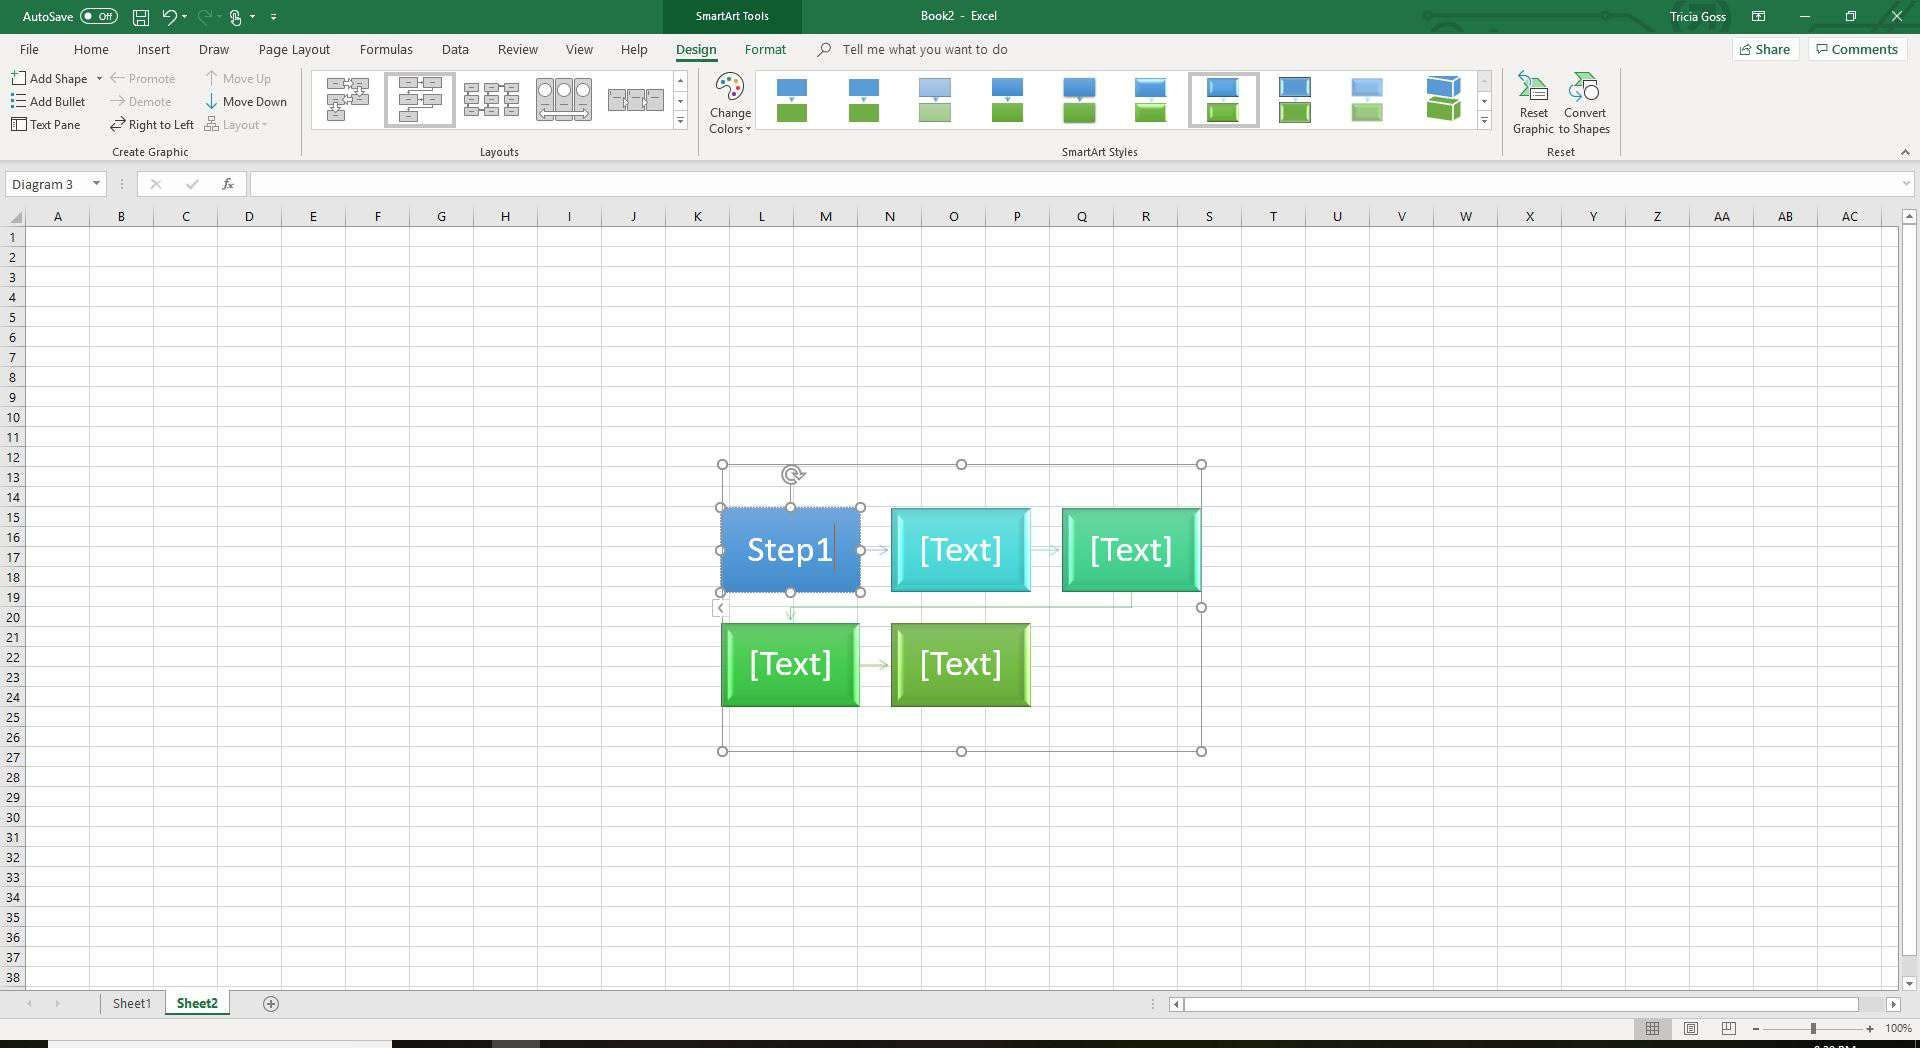 002 Frightening Flow Chart Template Excel 2016 Concept Full